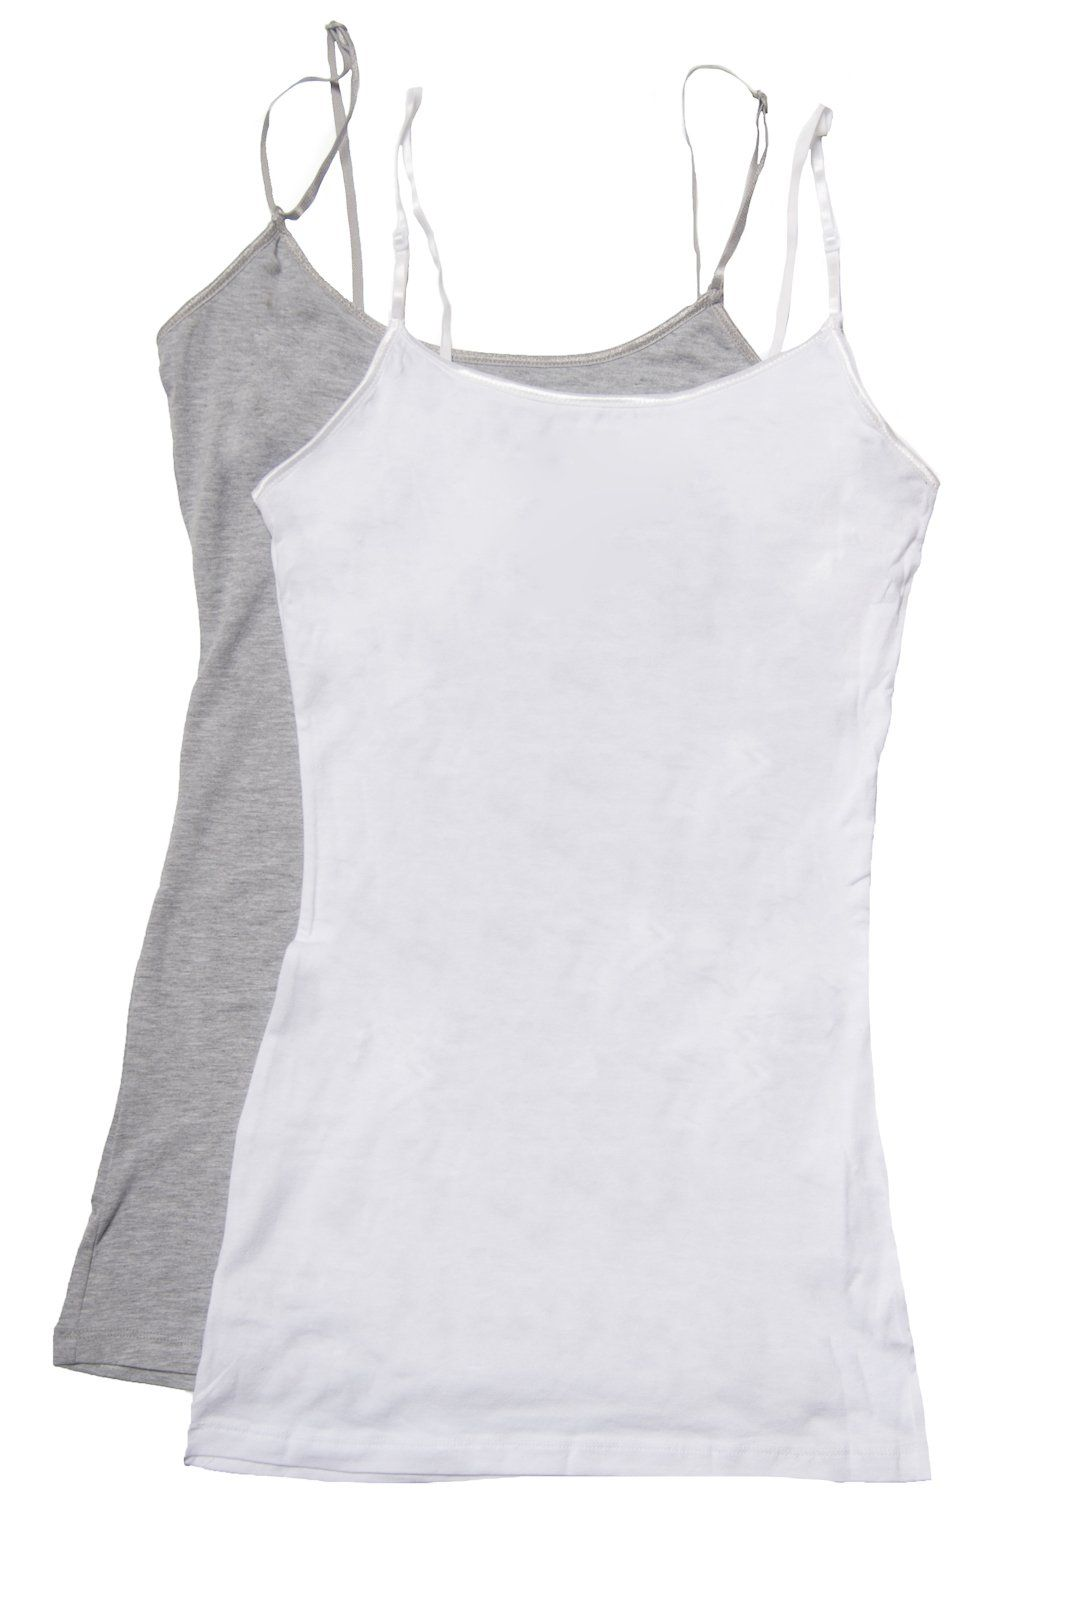 a7b219348e3bf Zenana Women's Tank Top Camisole, Pack of 2 at Amazon Women's Clothing store :